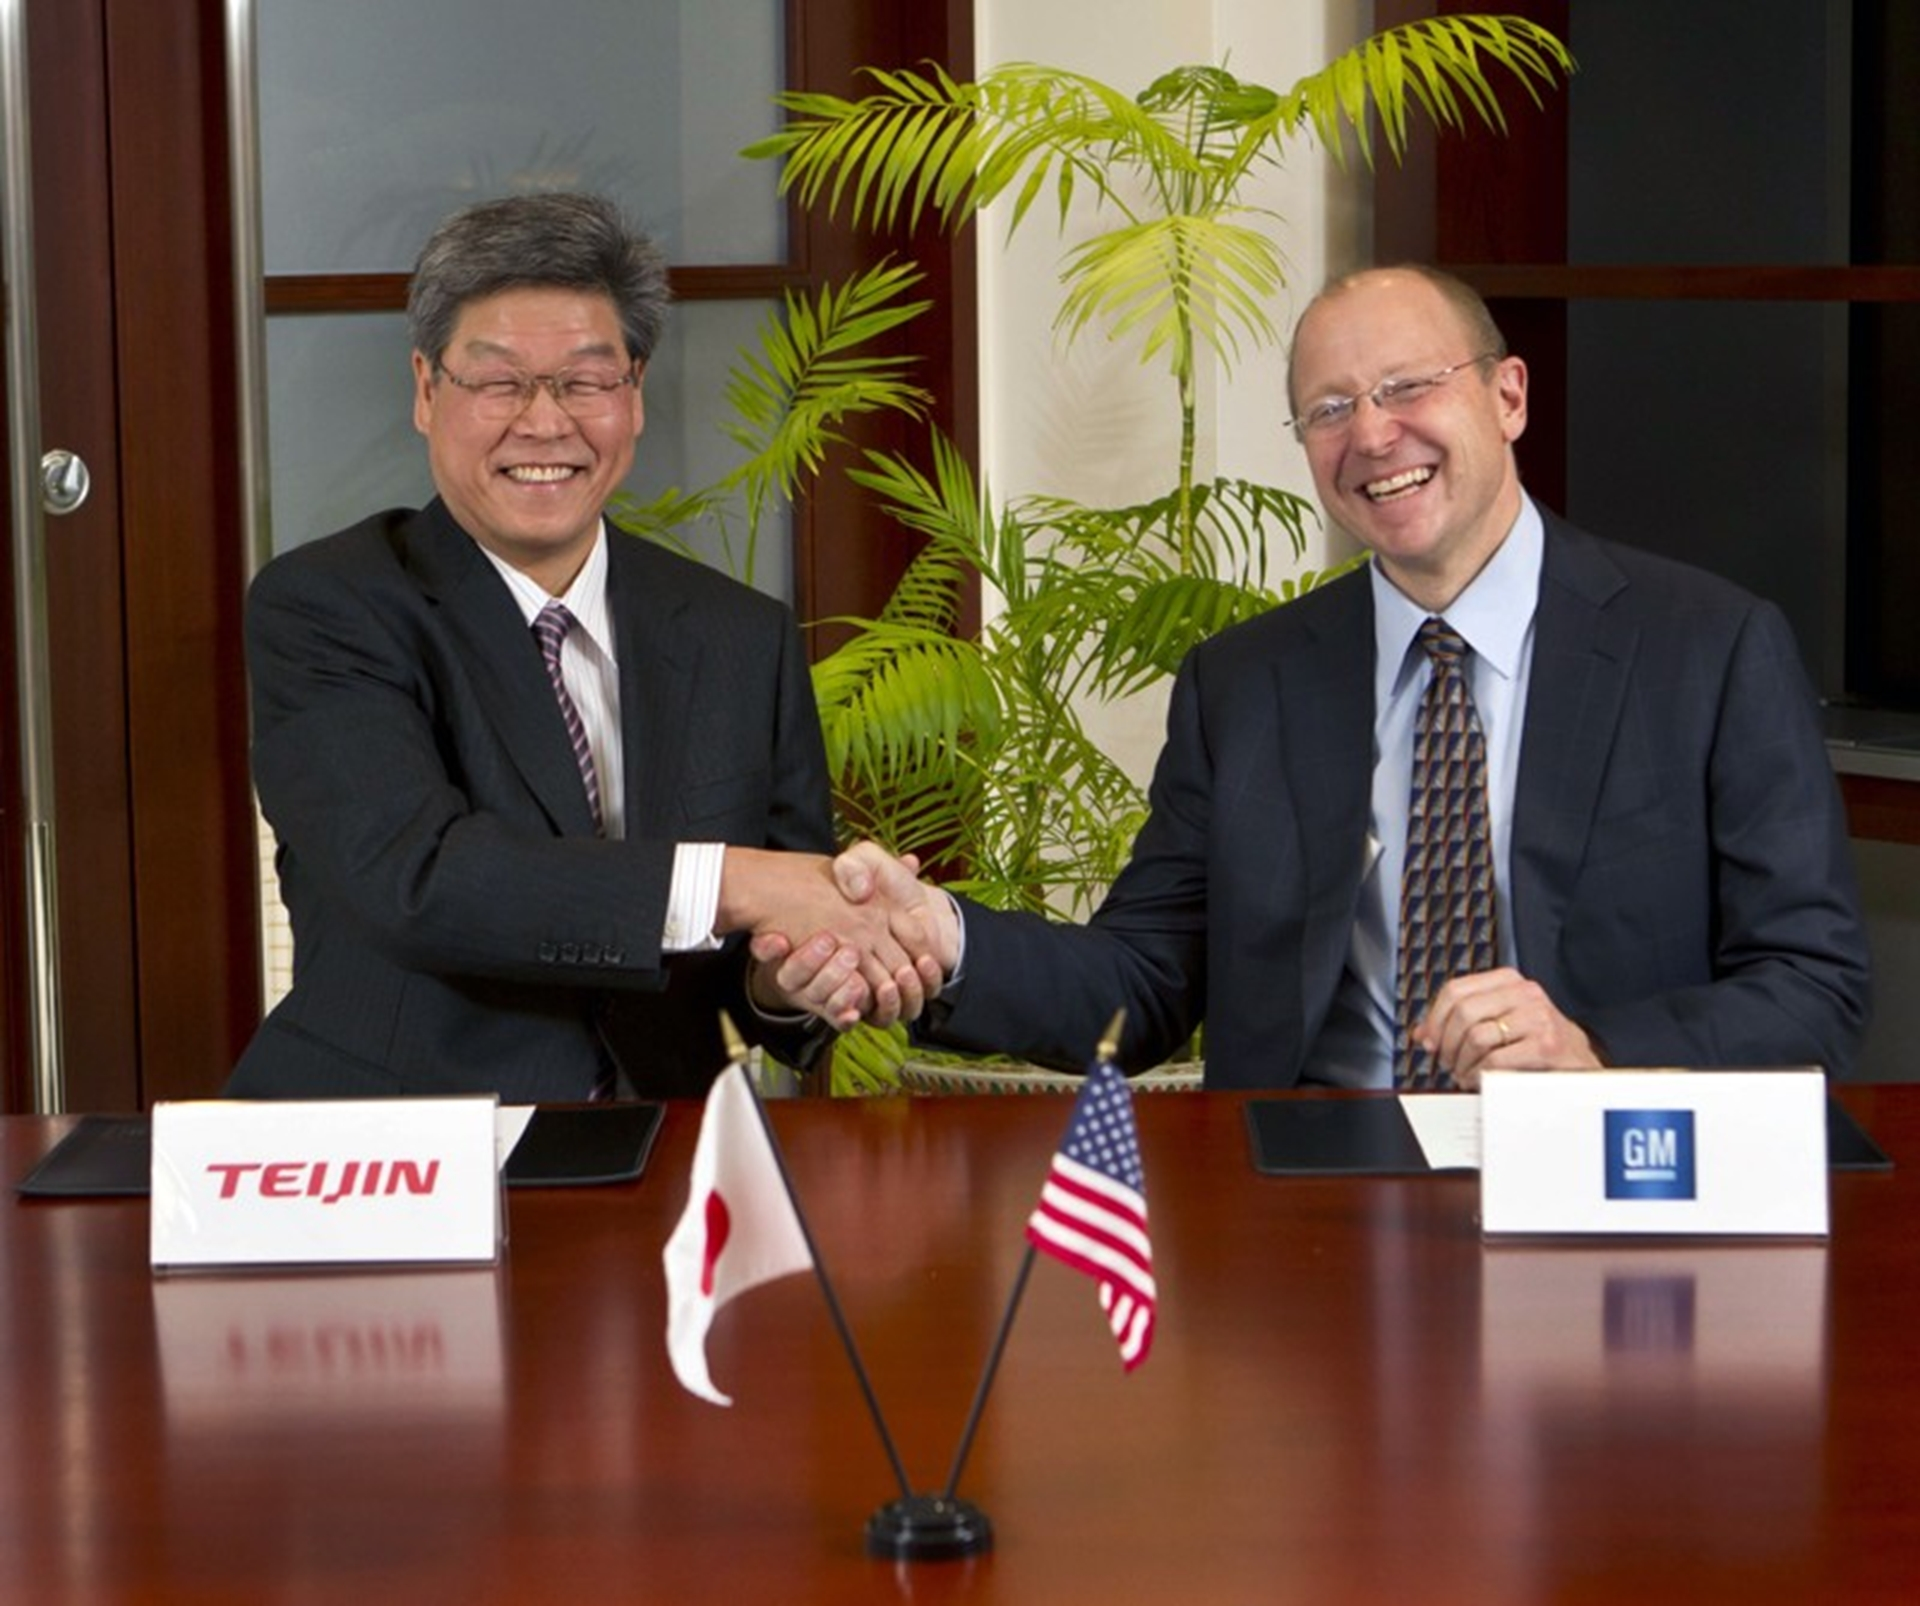 GM Teijin Agreement